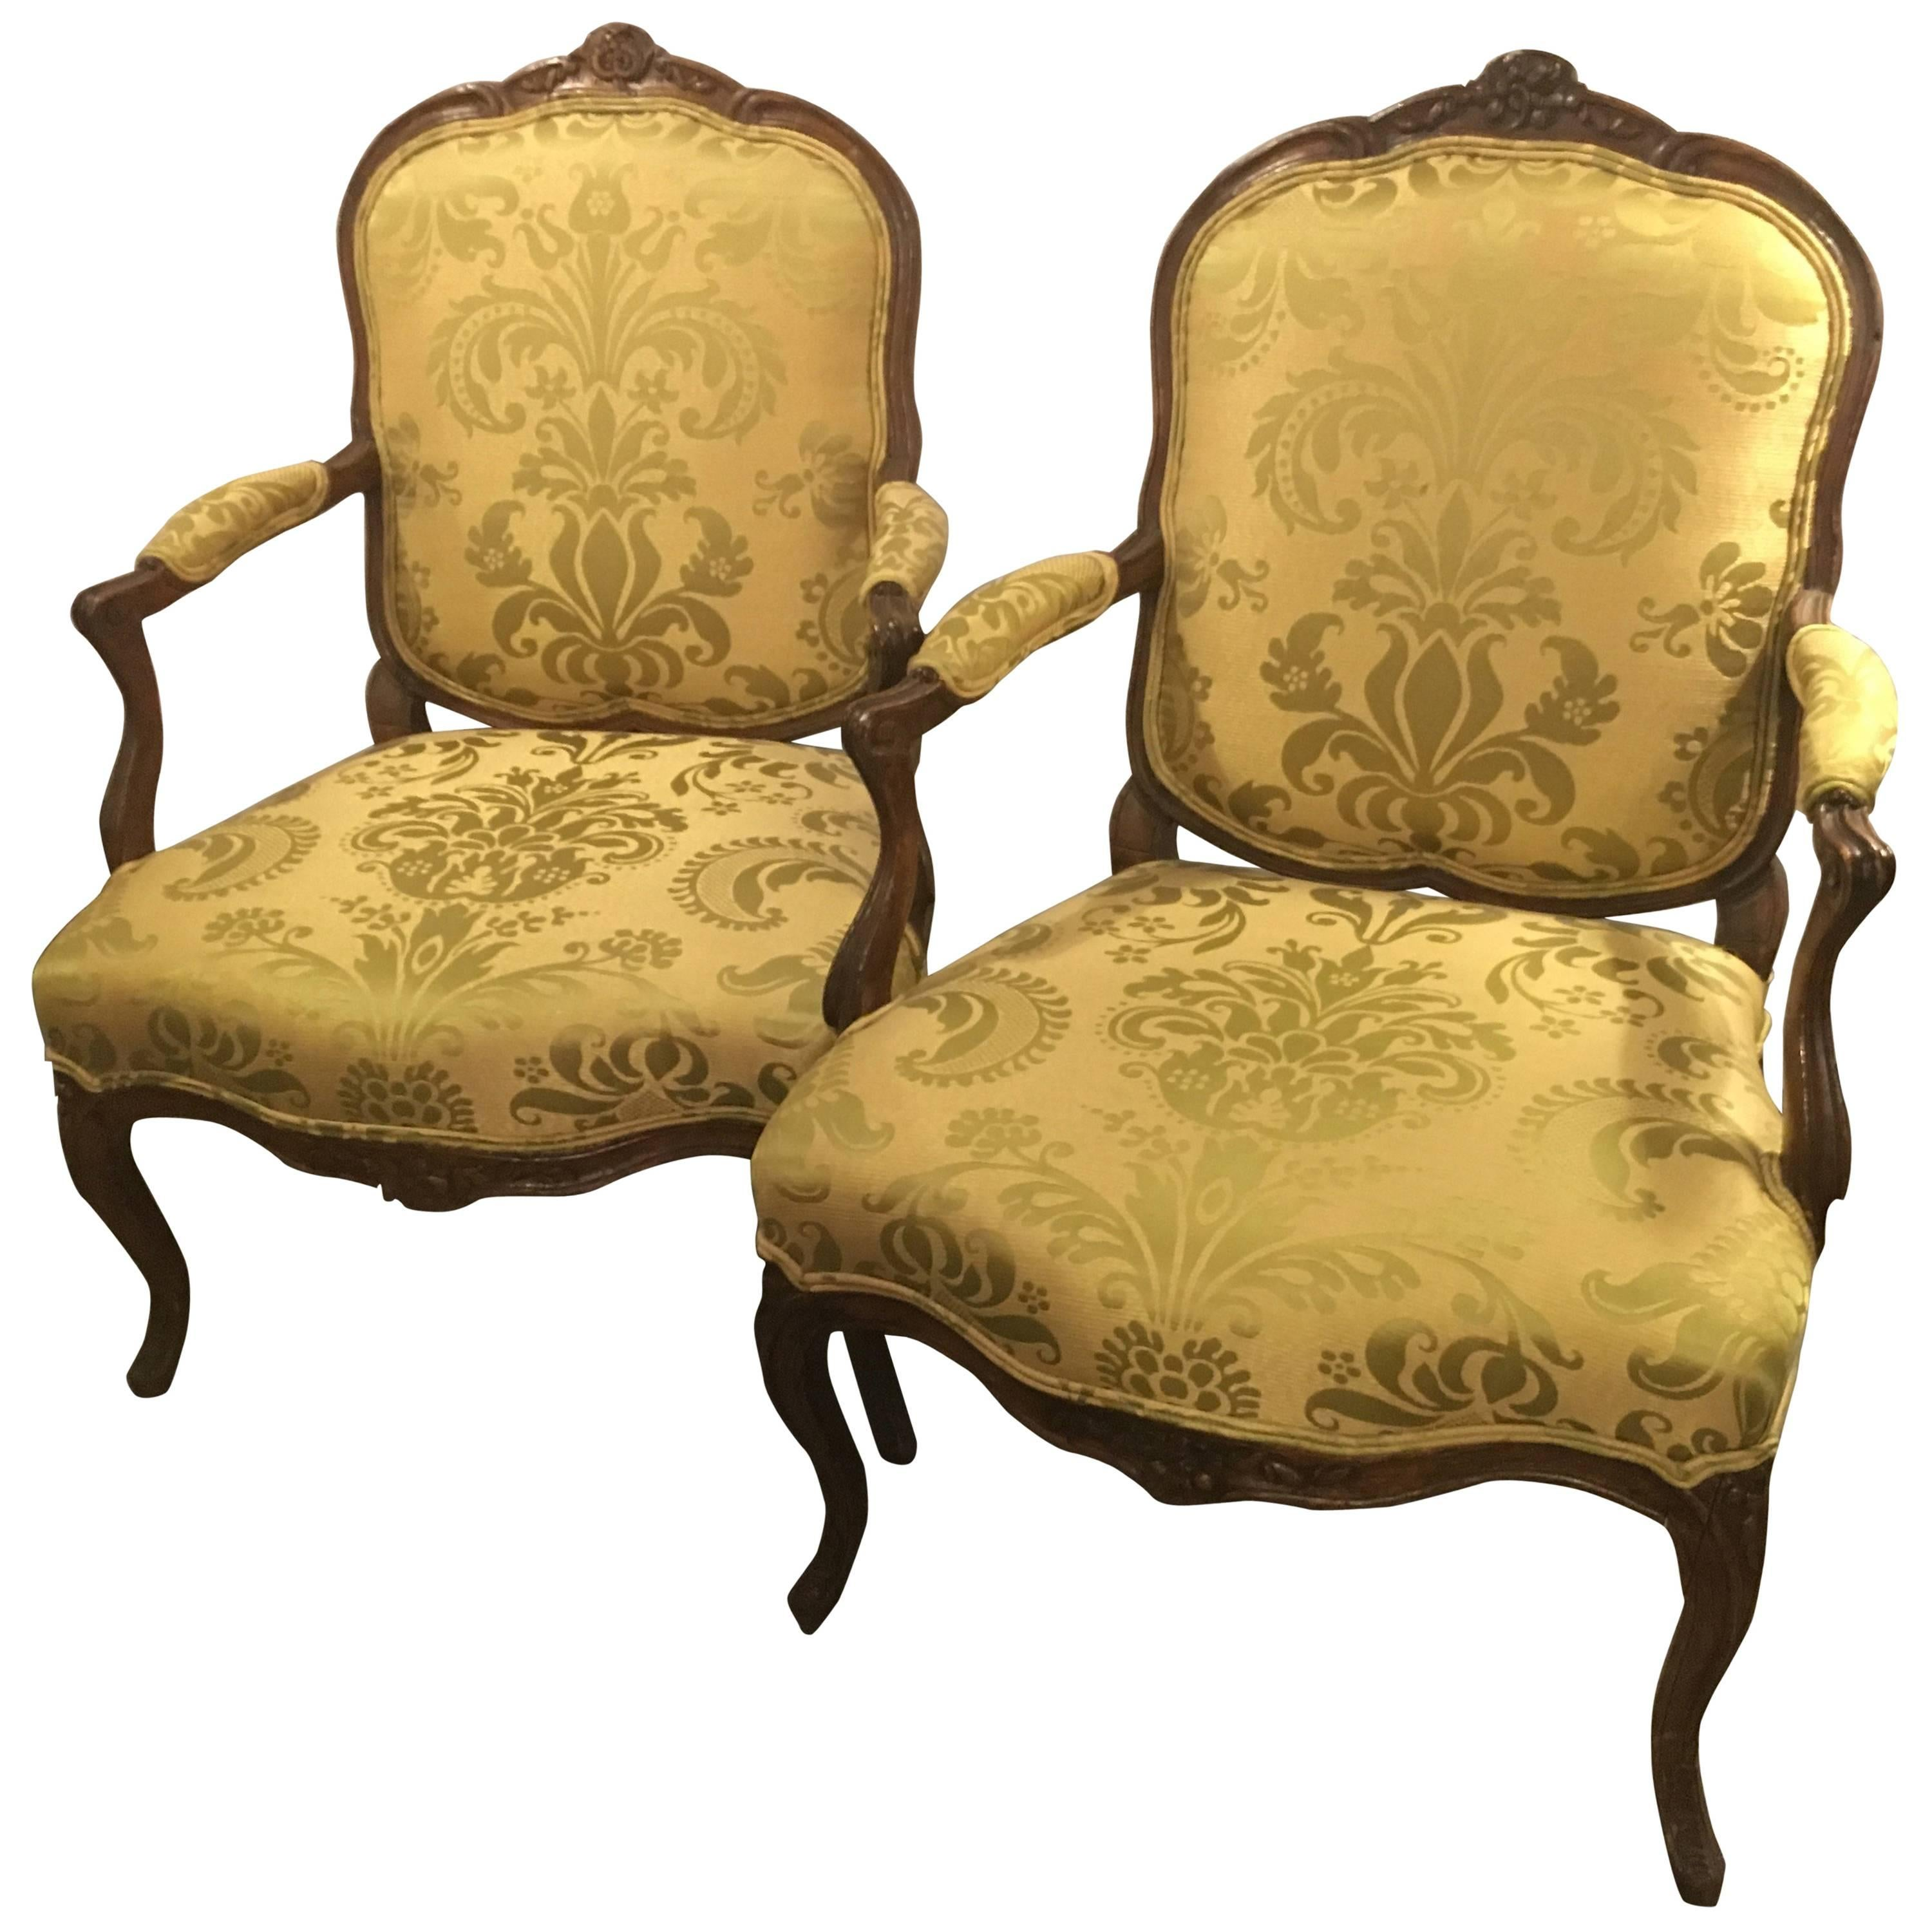 Fauteuils Bergeres Pair Of Period Louis Xv Fauteuils Or Arm Chairs Bergeres In Fine Condition